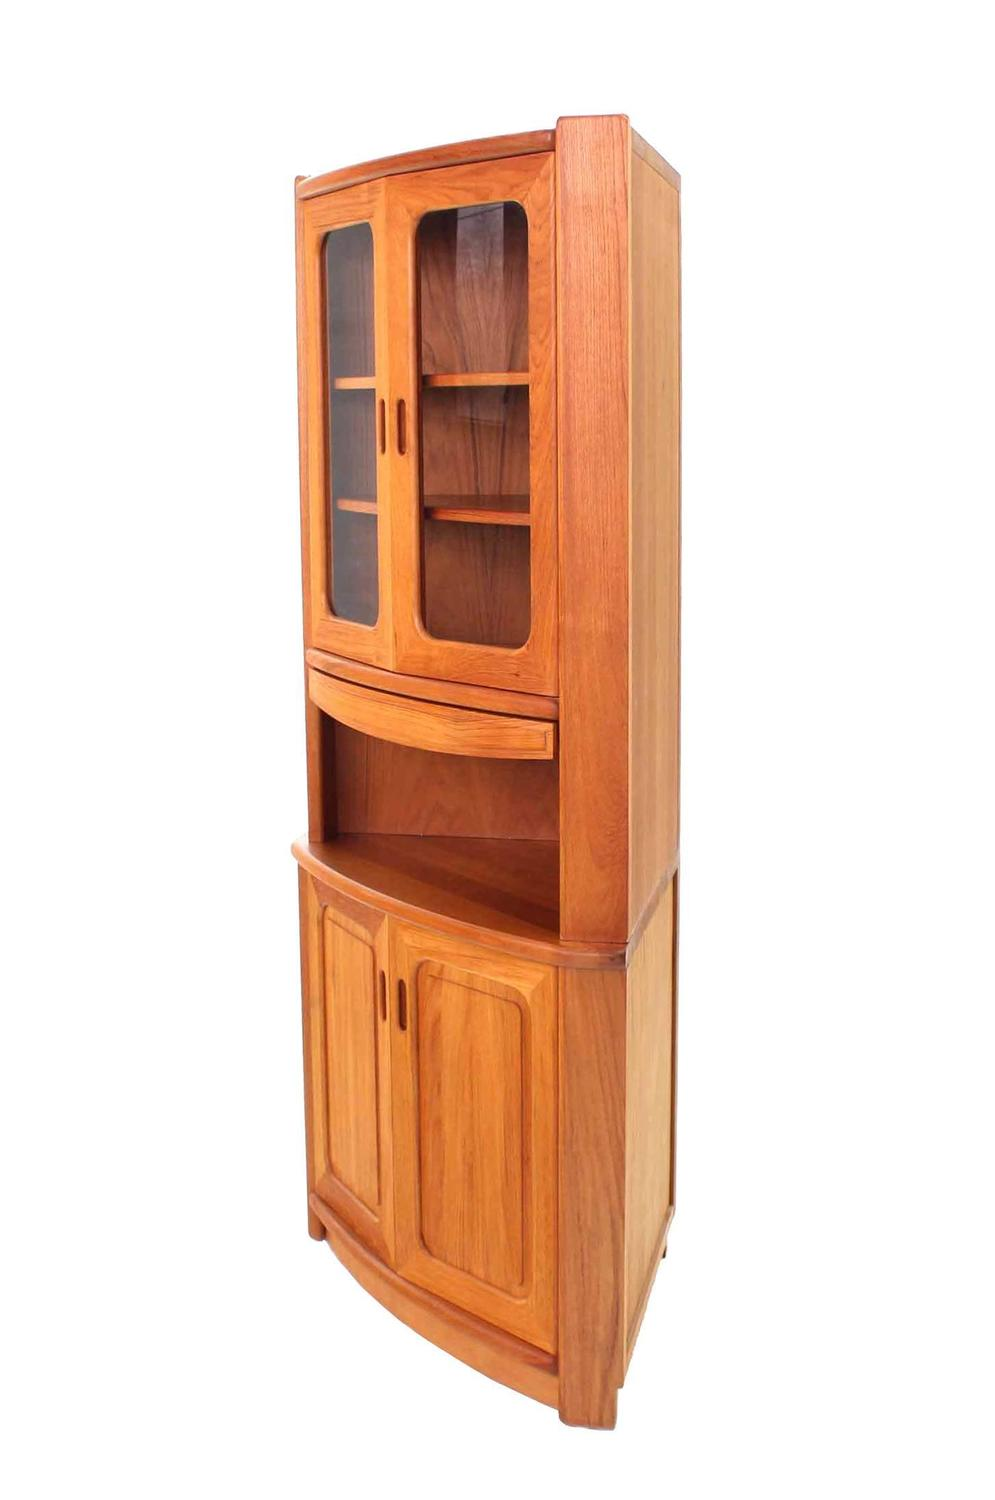 Solid teak danish modern corner cabinet for sale at 1stdibs for Modern teak kitchen cabinets